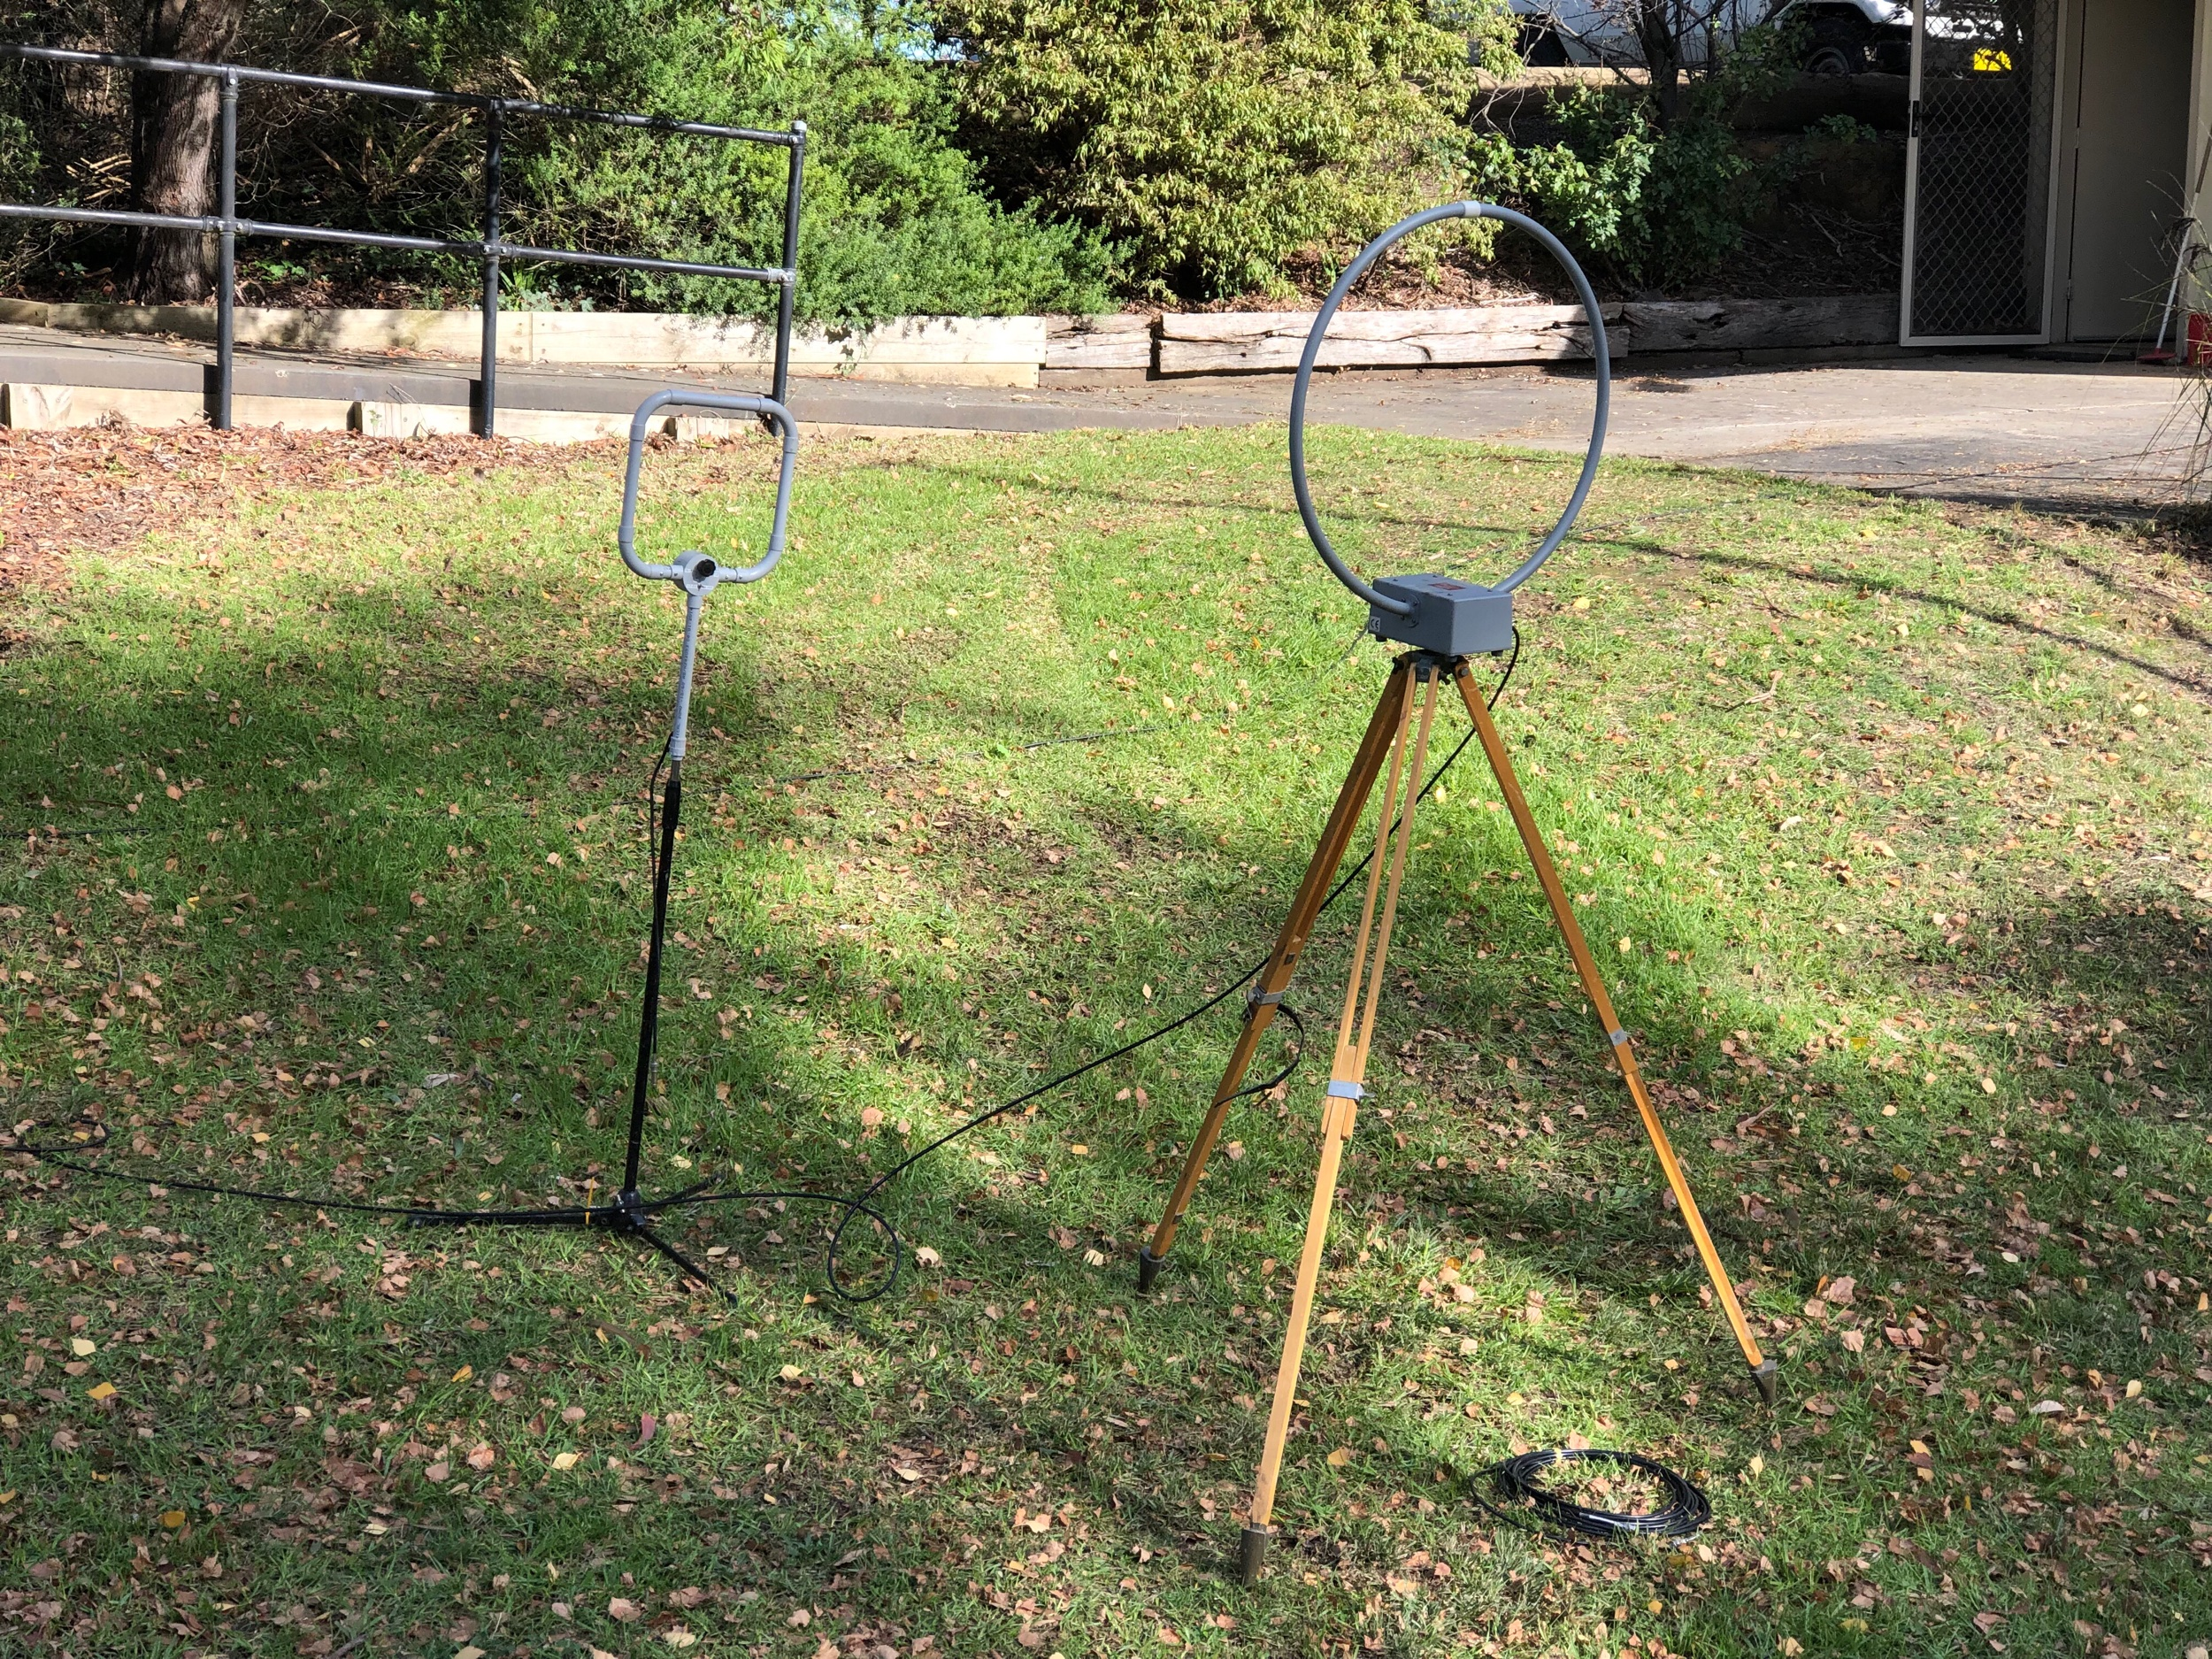 The rec. loop antenna's - 80M Antenna Shoot Out